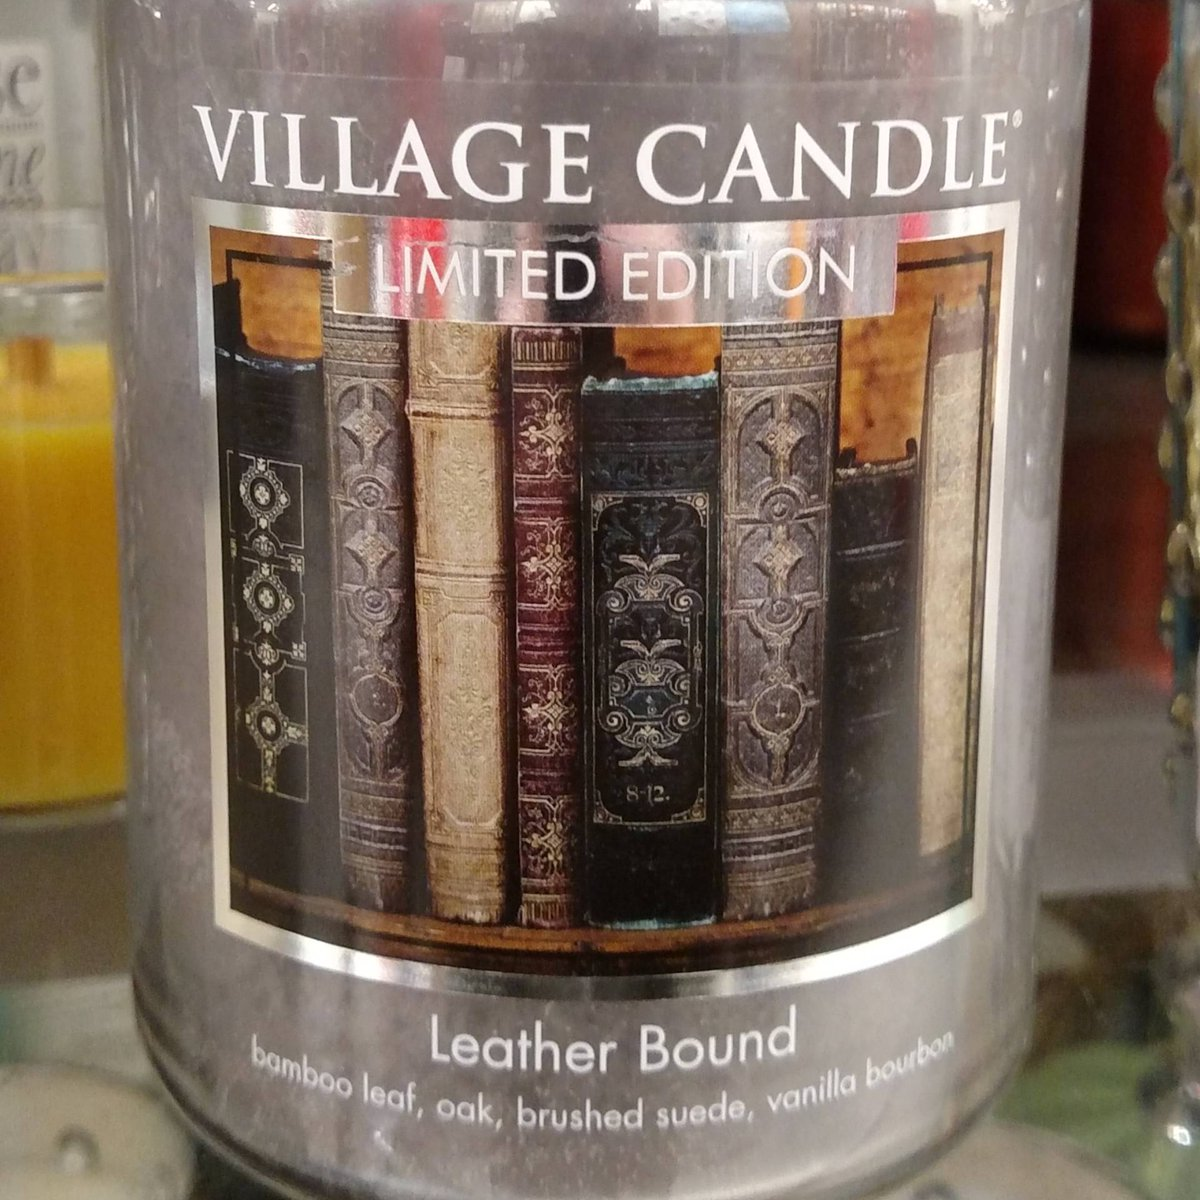 #TBT to finding this librarian candle. Ron Burgundy would be jealous.